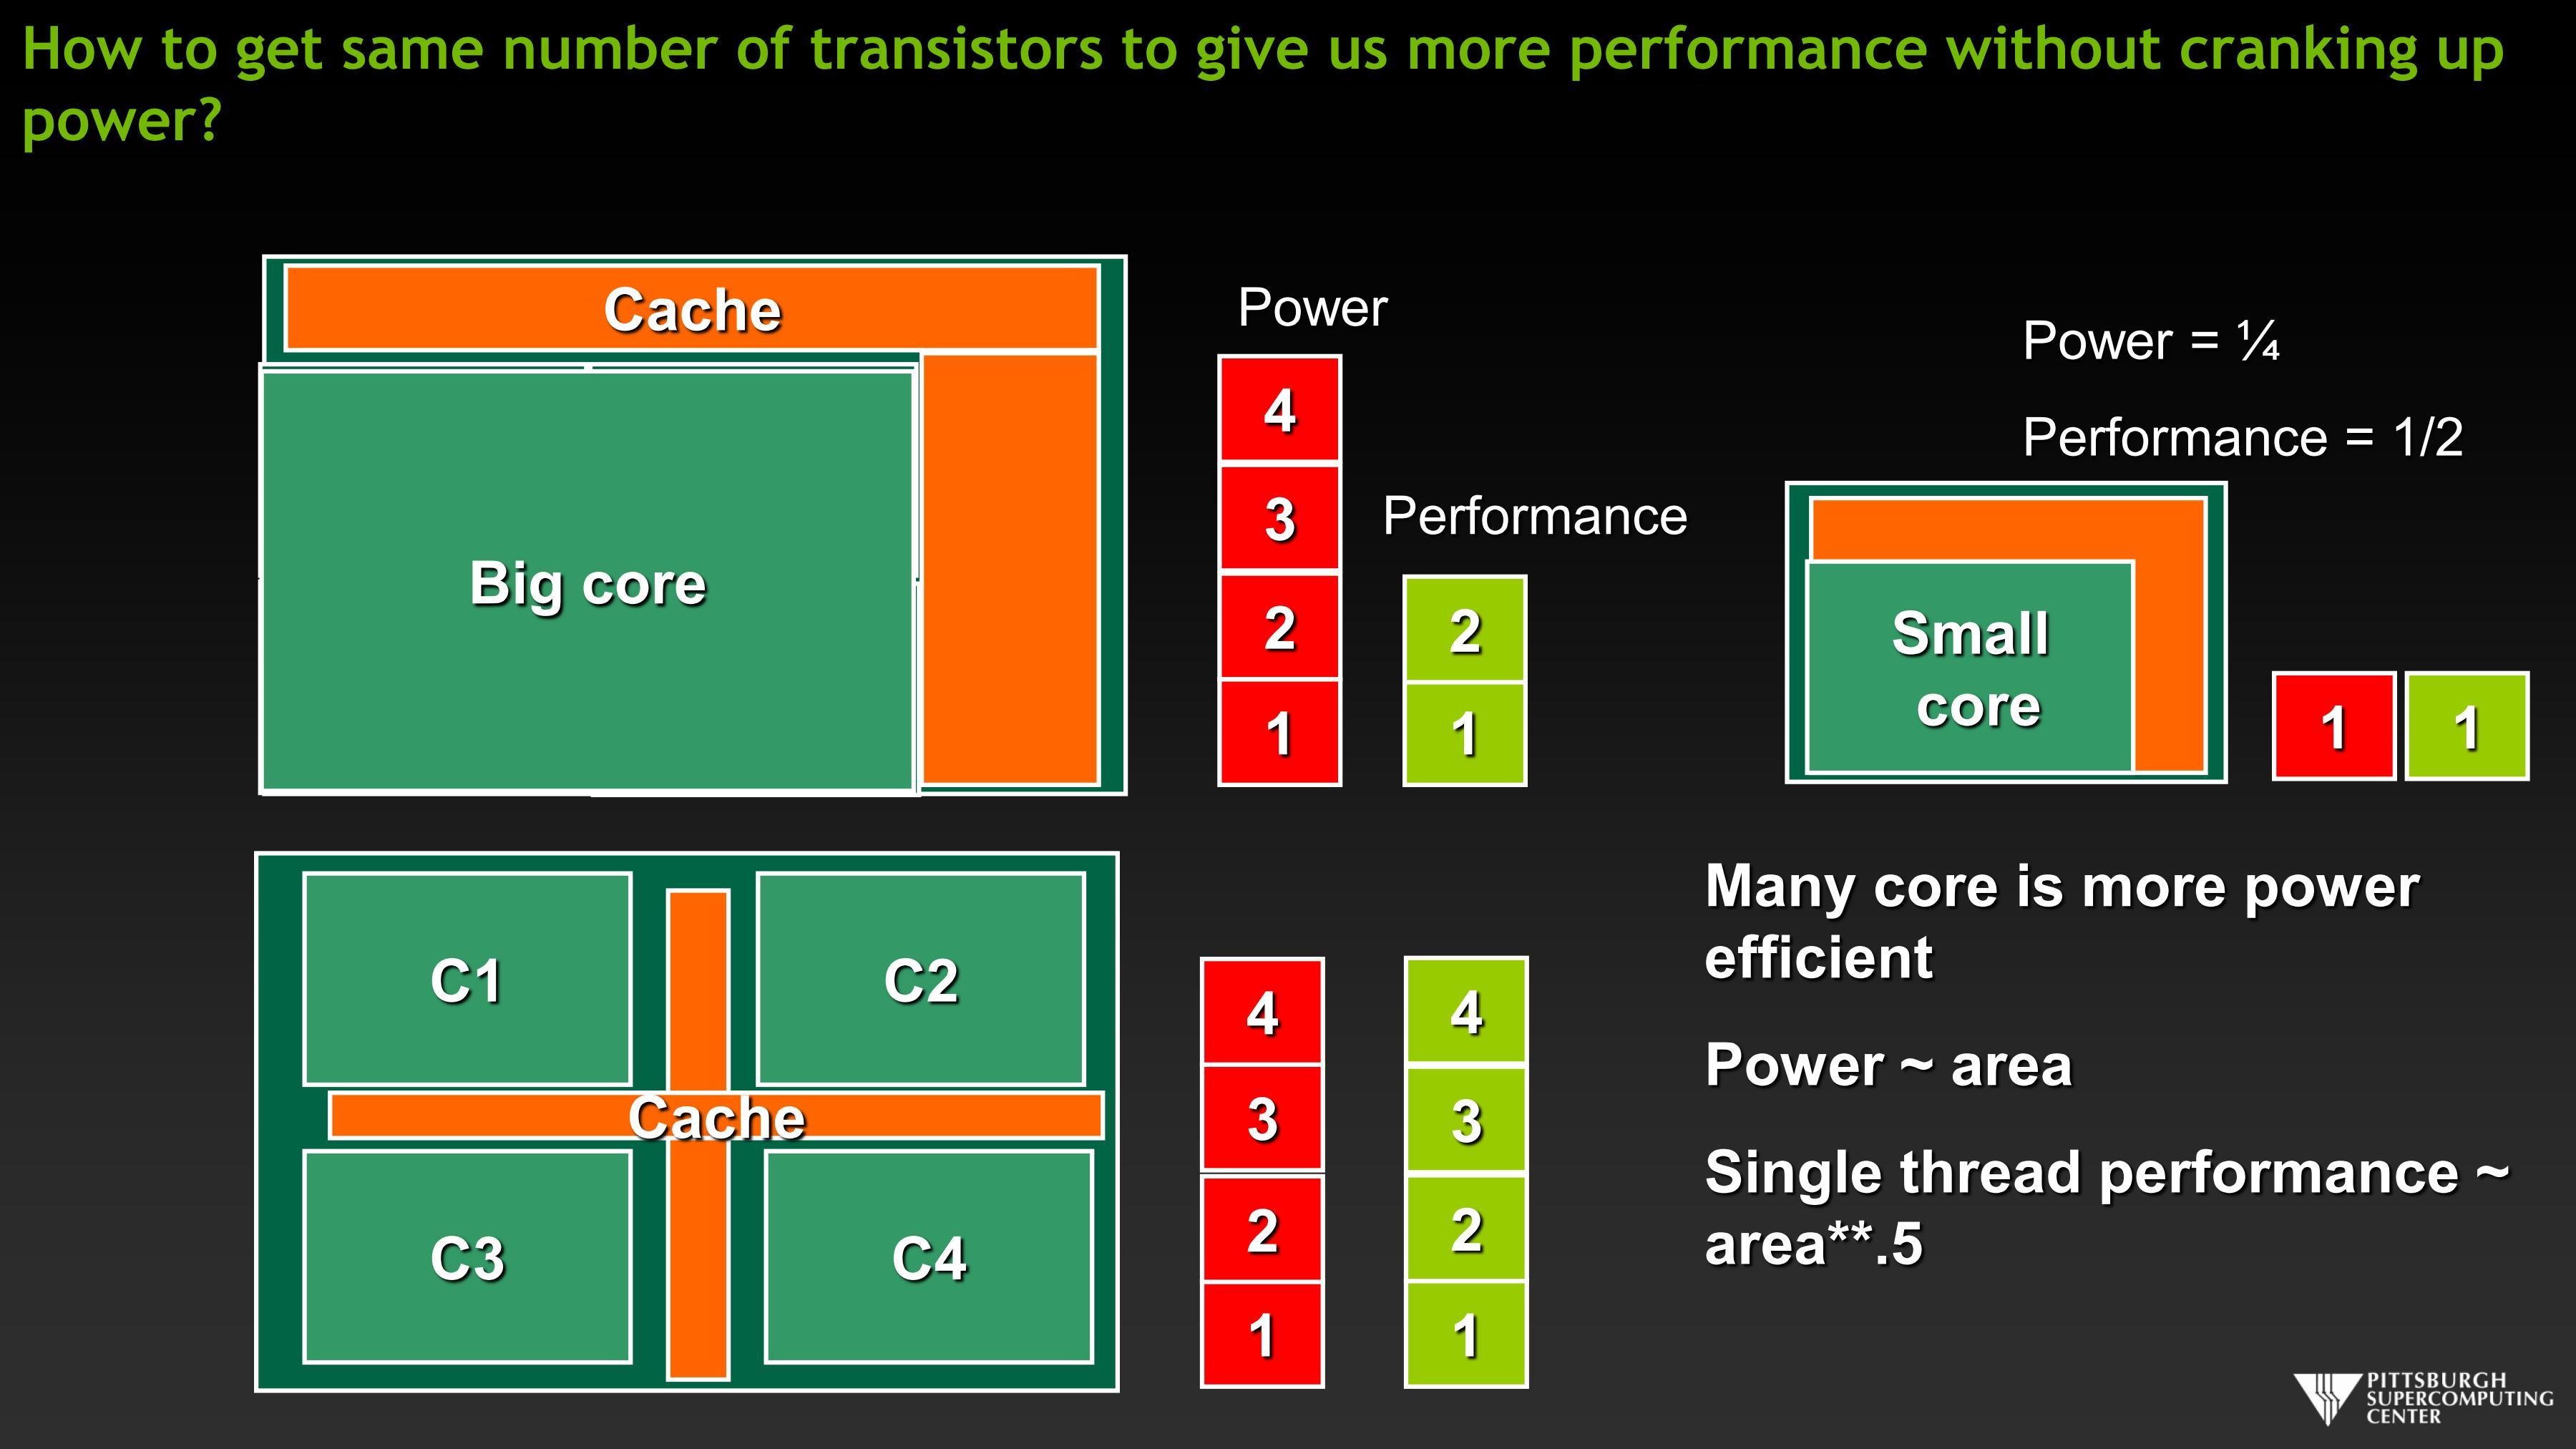 How to get same number of transistors to give us more performance without cranking up power?